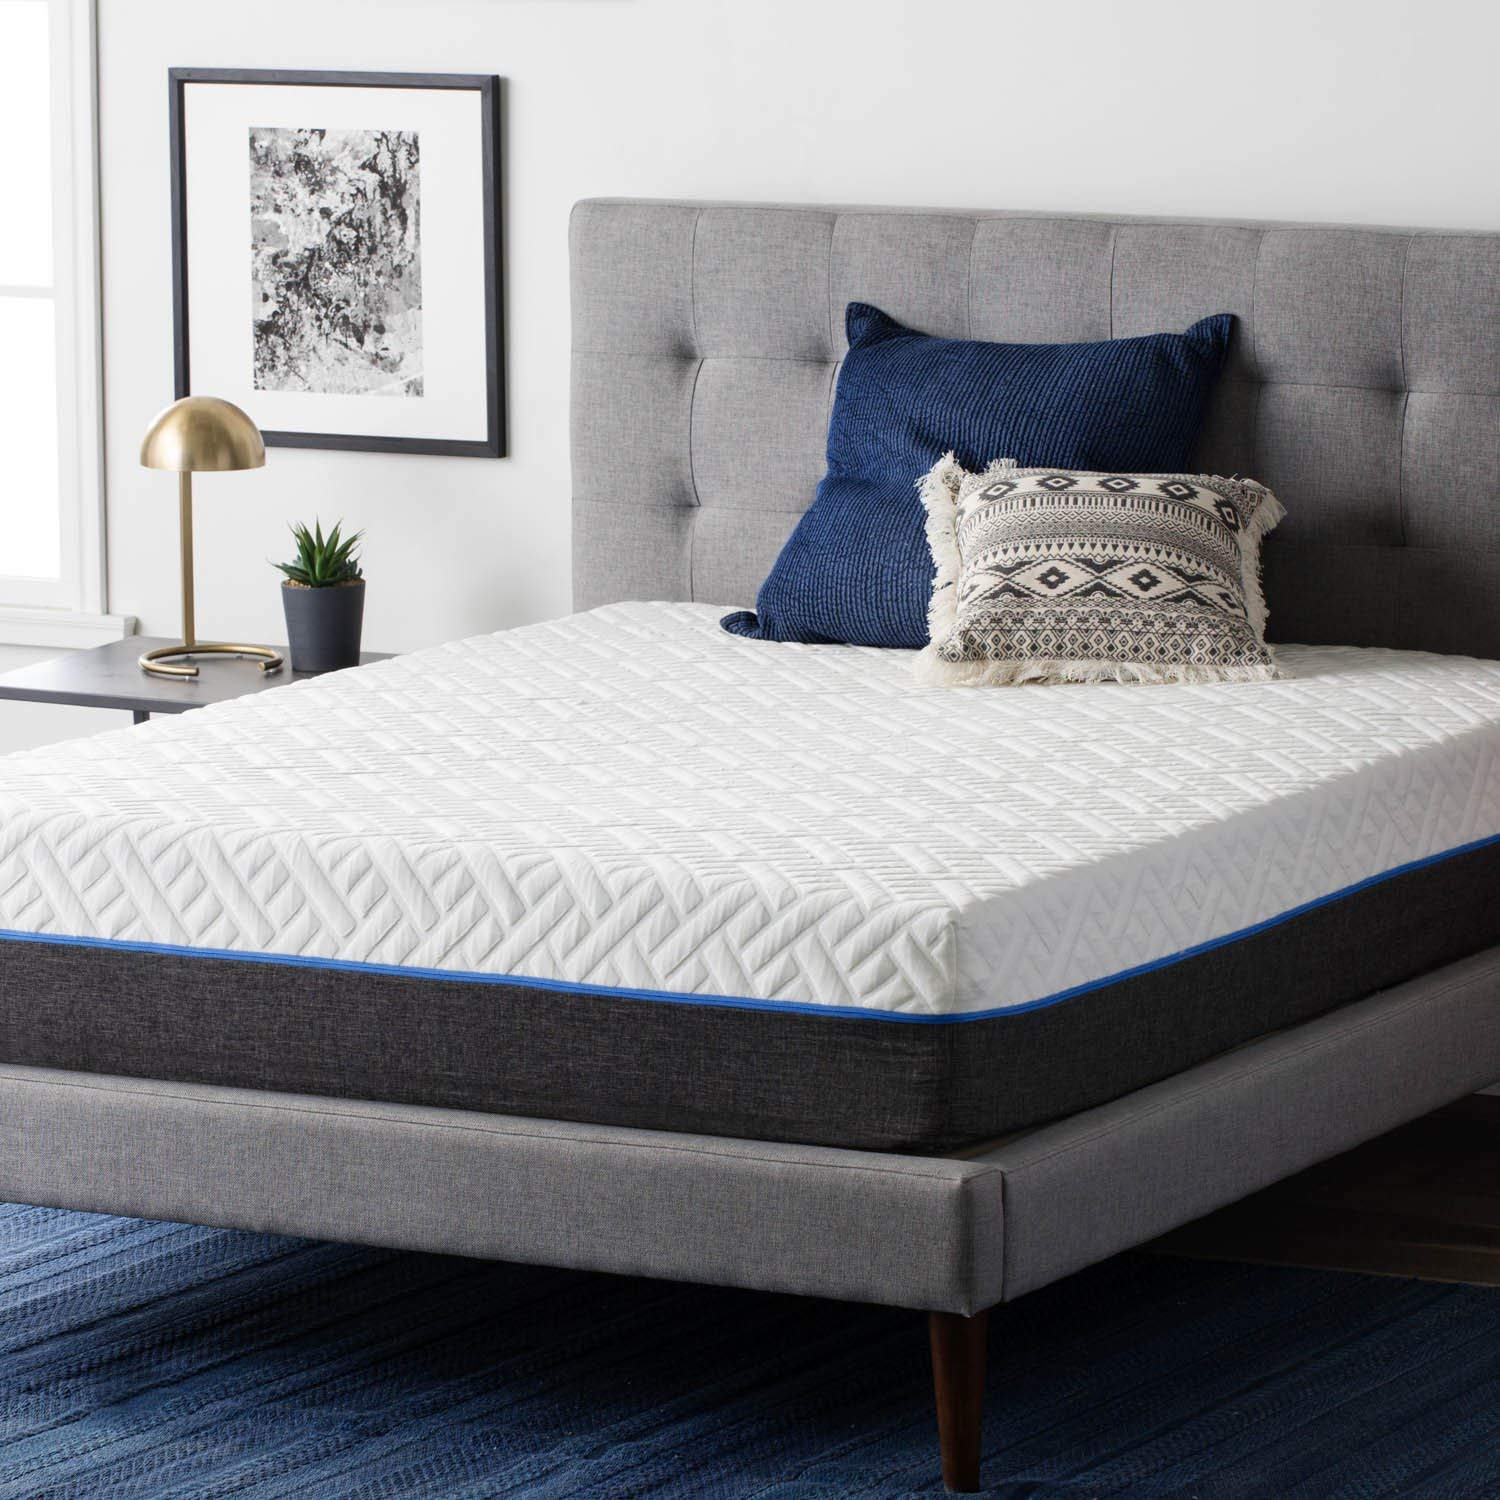 Heat Dissipating Breathable 11 Inch Gel Memory Foam and Individually Wrapped Steel Coils Innerspring Hybrid Design Mattress, Optimal Comfort and Support, Dust Mite Resistant + Expert Guide